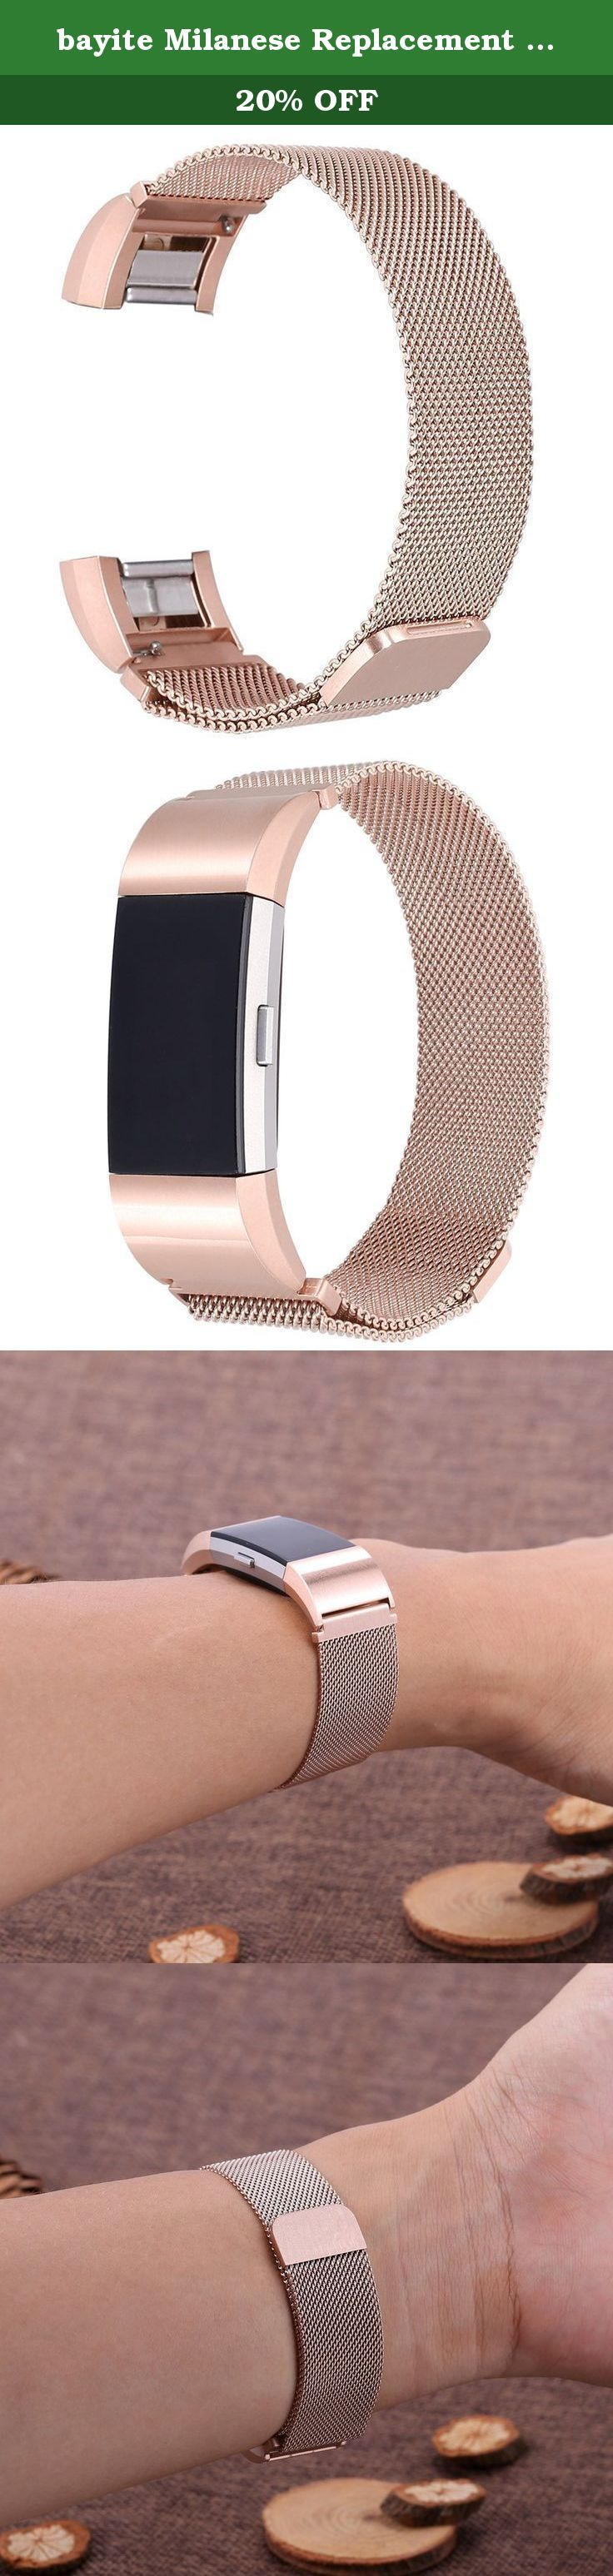 bayite Milanese Replacement Bands for Fitbit Charge 2, Rose Gold Small. bayite Replacement Milanese Band for Fitbit Charge 2 Elevate your style for every occasion. Magnetic closure. No need to to resize 100% satisfaction and RISK FREE warranty: 1 year free replacement or full refund without return If the item you have received is defective in any way, please message us for free replacement or refund without return.